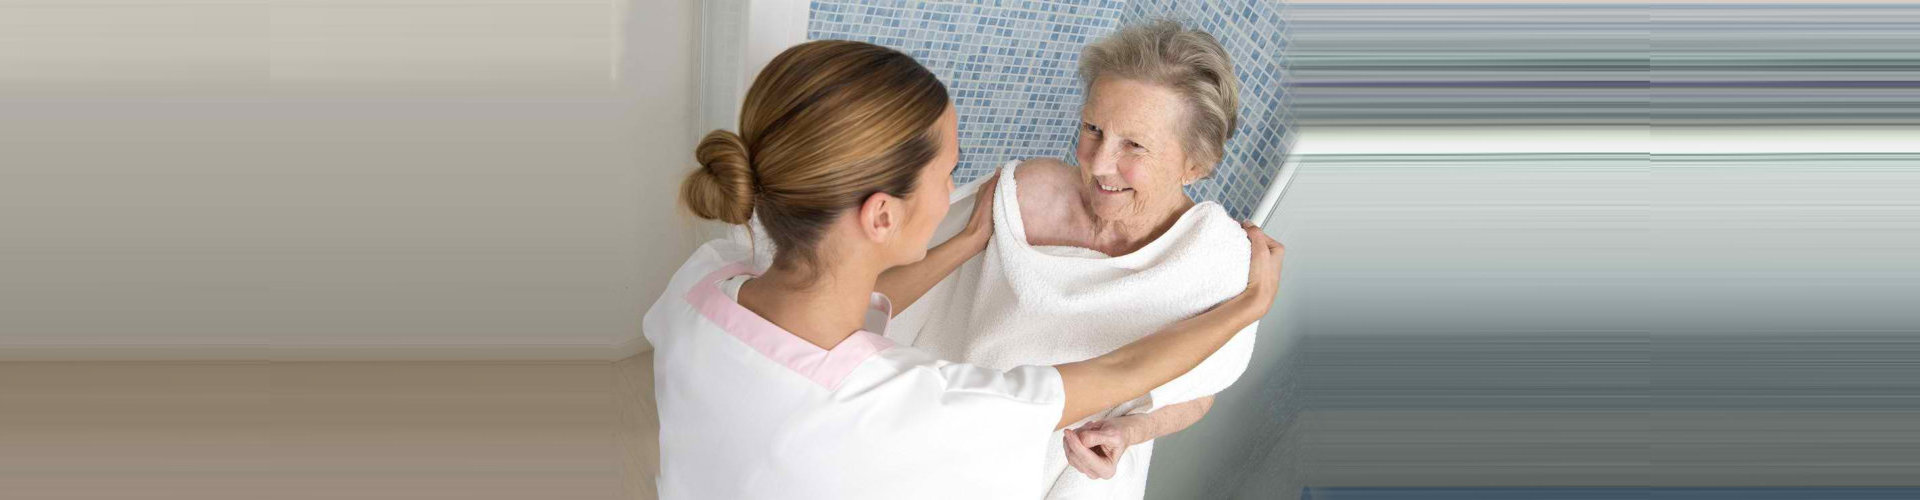 young lady assisting the elderly woman after taking a bath